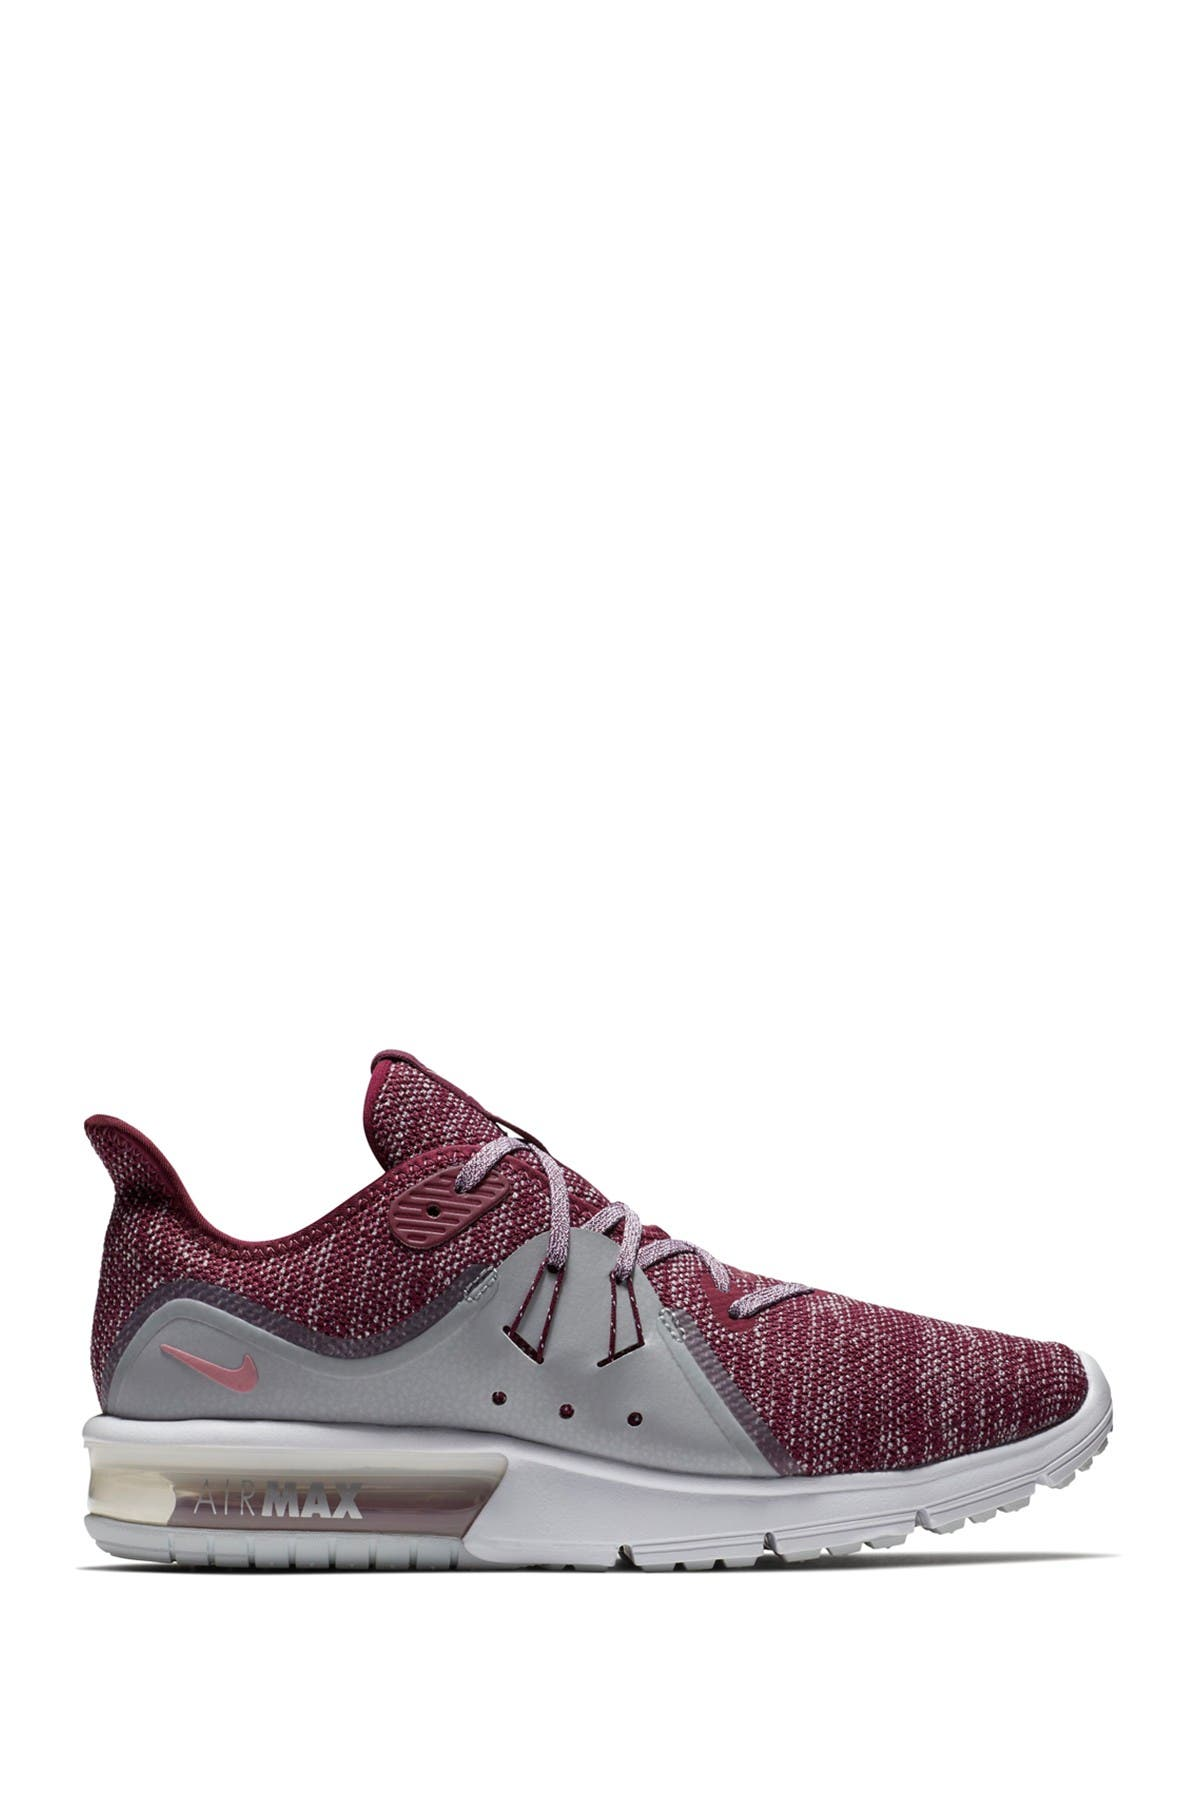 Image of Nike Air Max Sequent Sneaker